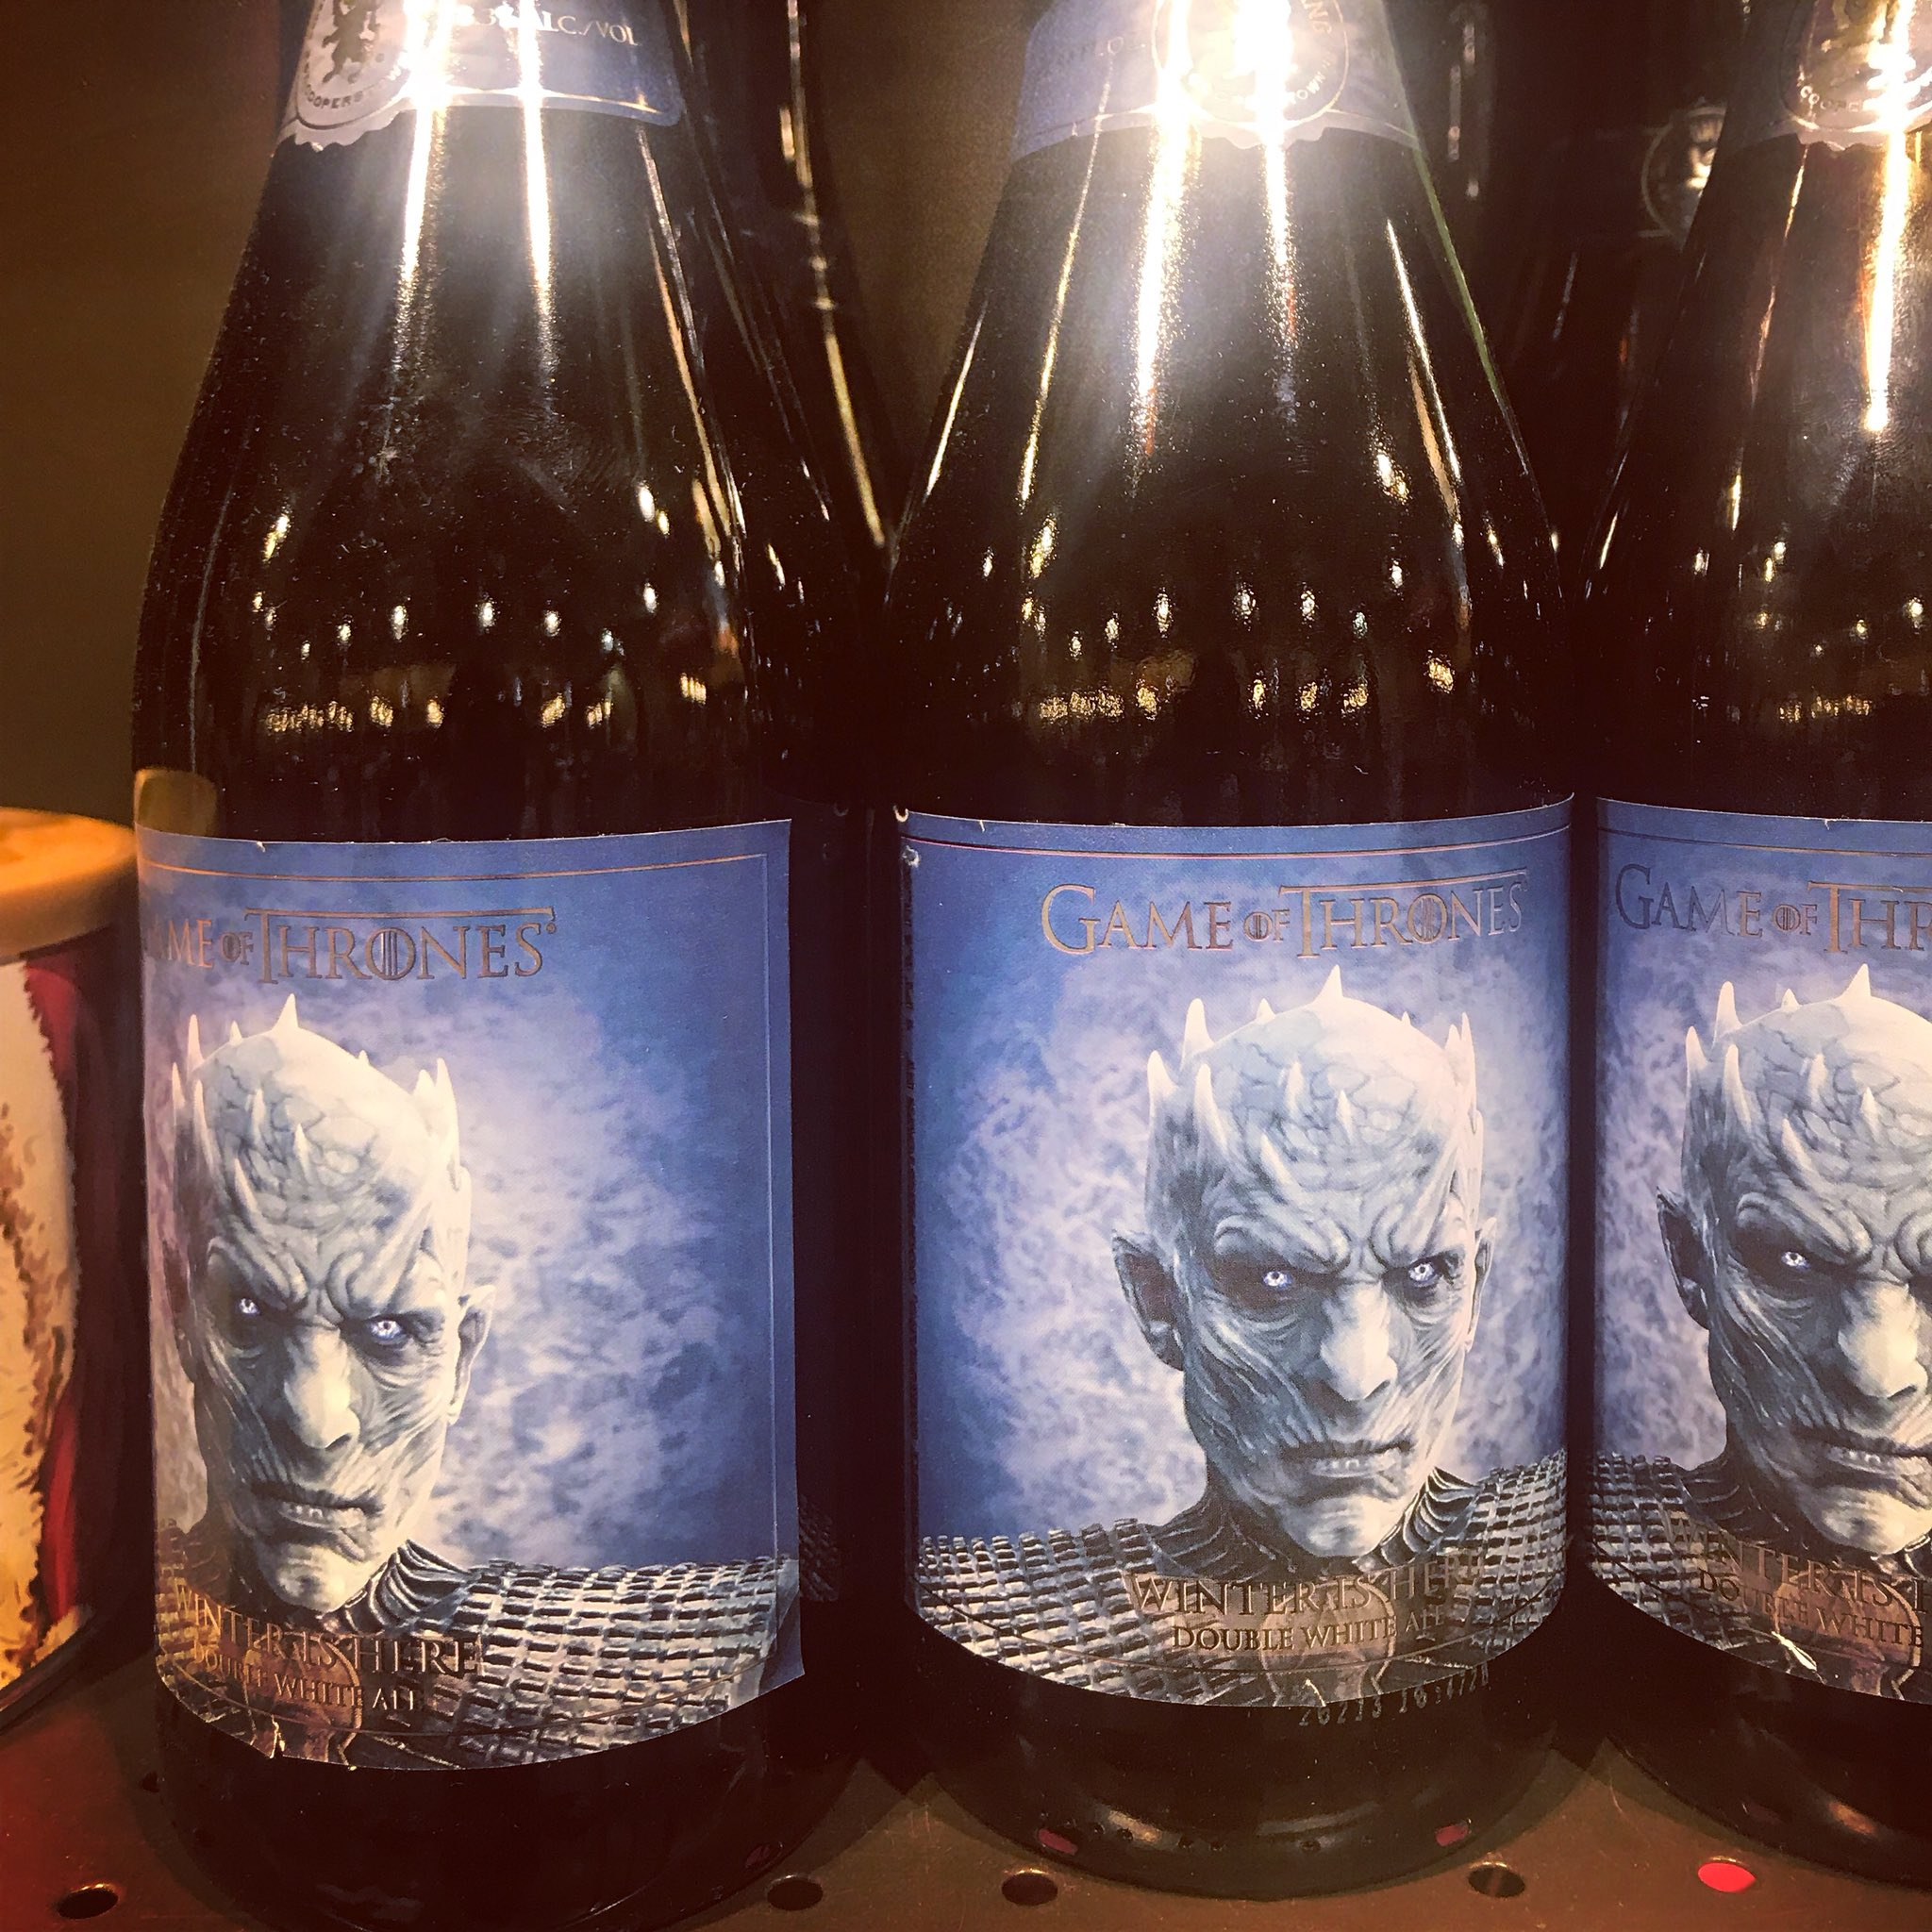 #gameofthrones #NightKing has his own beer. Winter has arrived. https://t.co/P6x5KWBcti